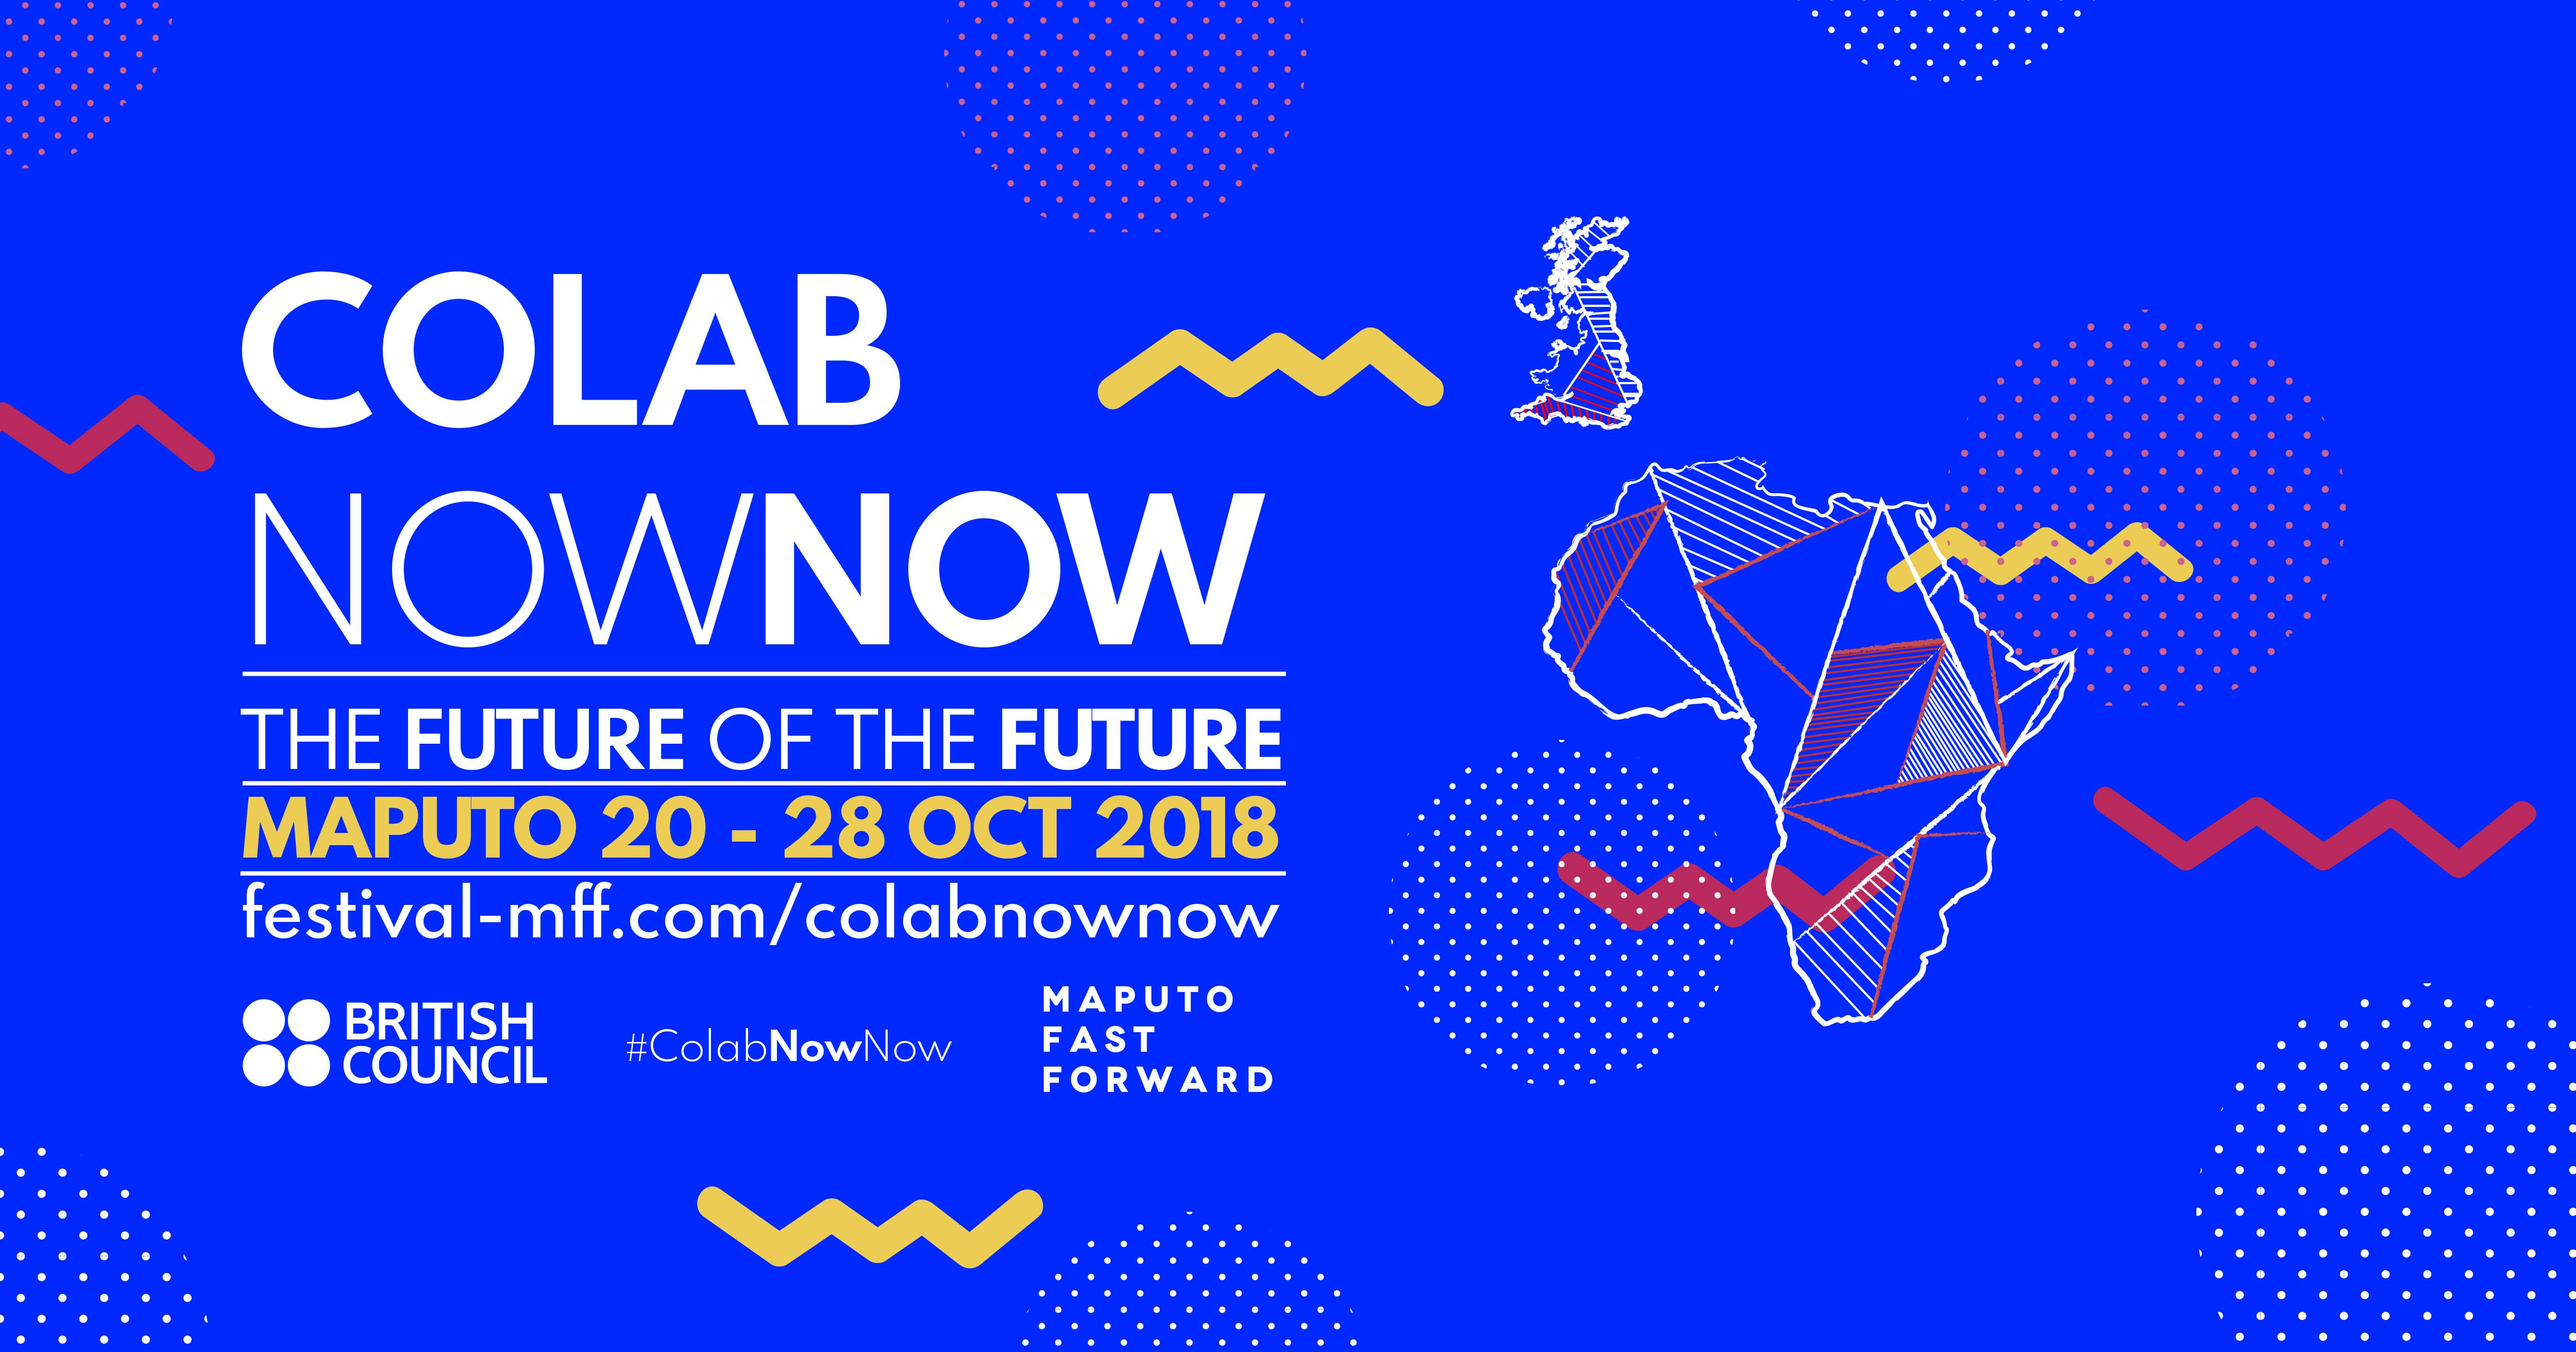 British Council/Maputo Fast Forward ColabNowNow Program 2018 (Fully-funded)